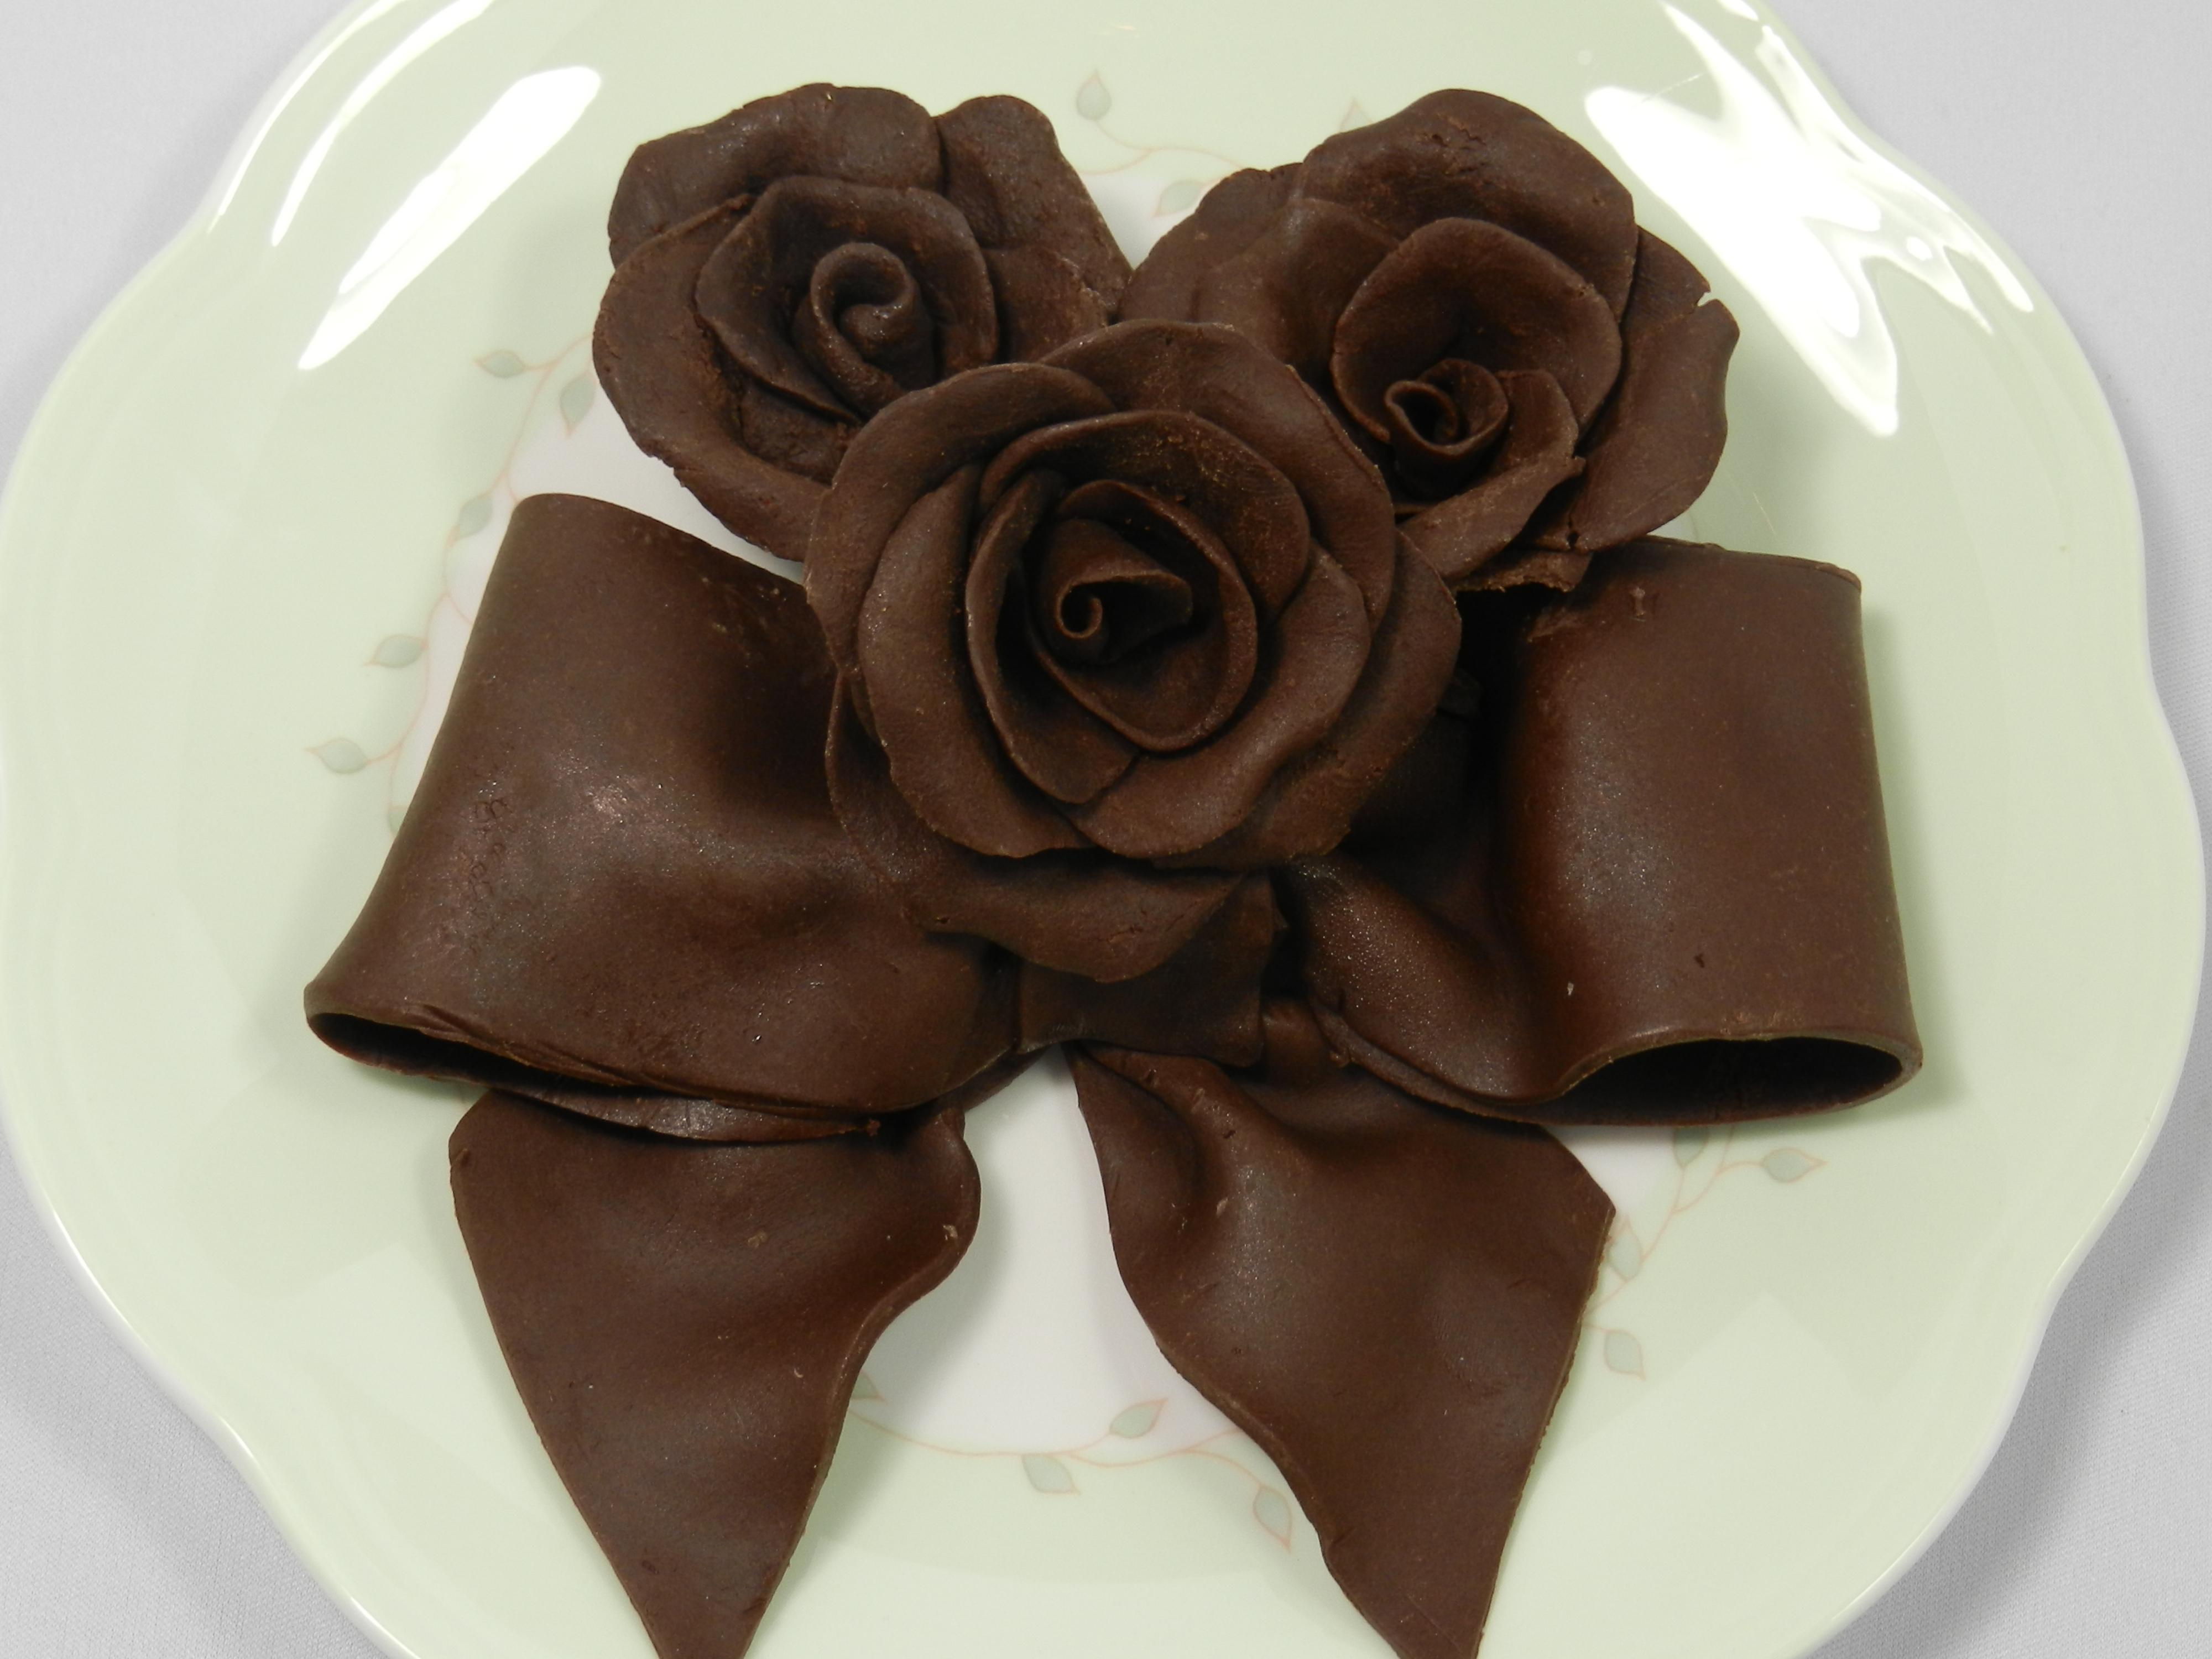 Chocolate Roses, Bows and Other Chocolate Decorations | Julia ...